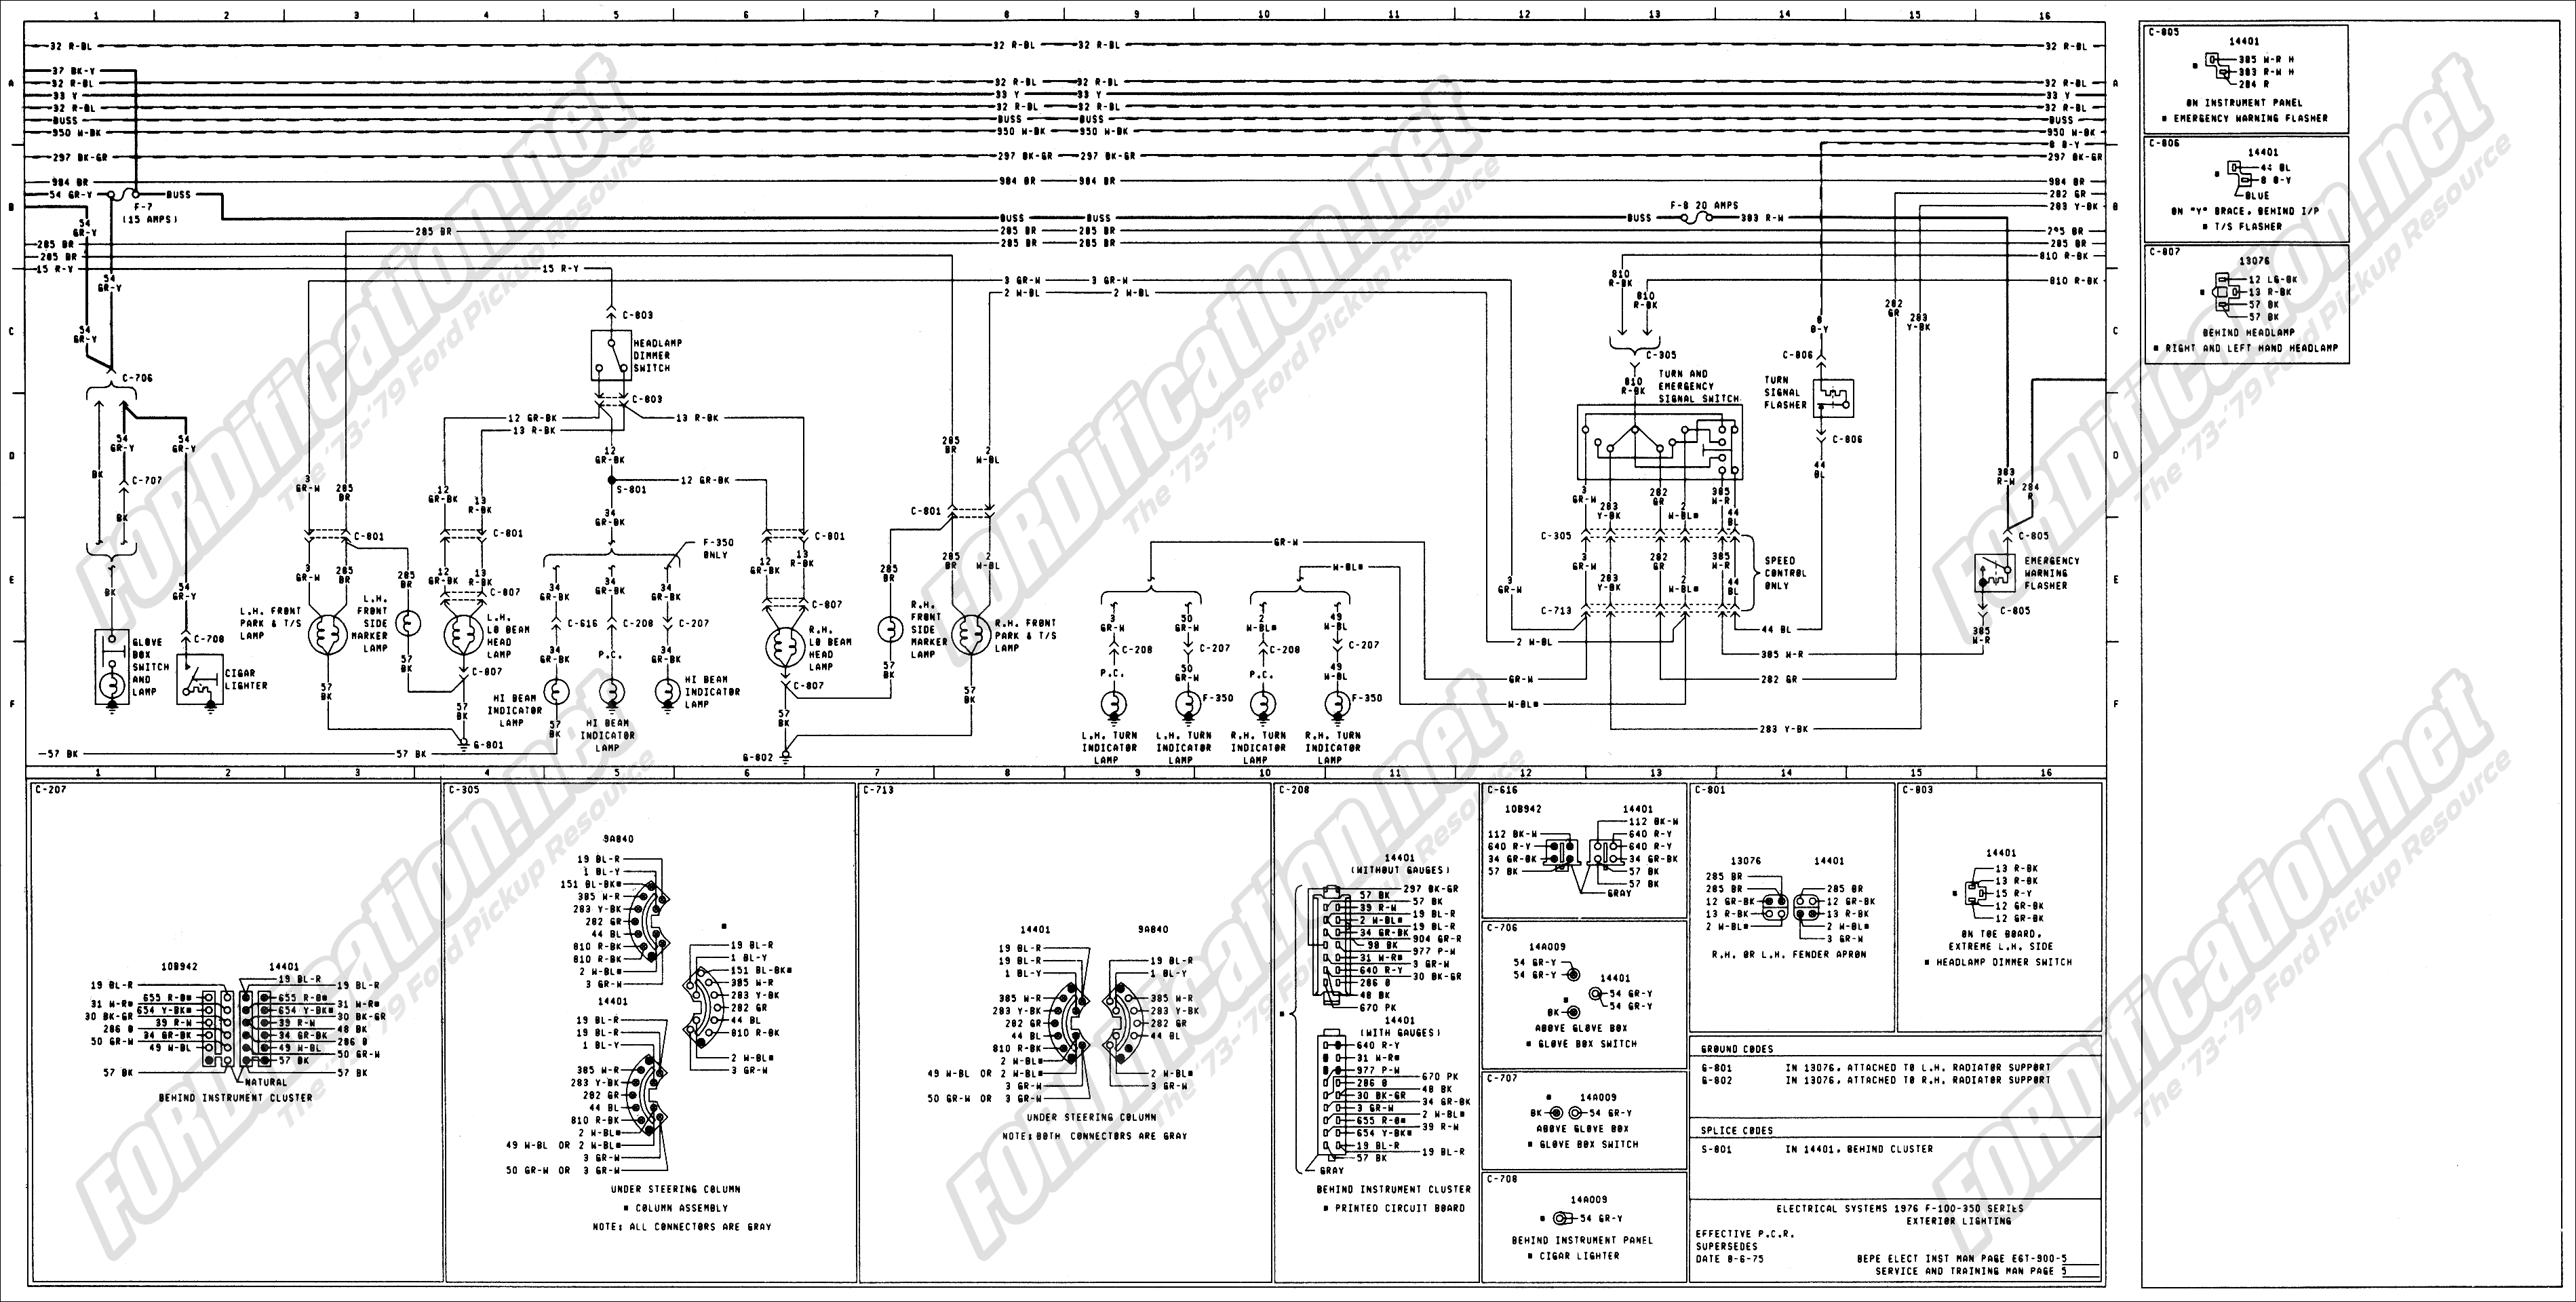 wiring_76master_5of9 1973 1979 ford truck wiring diagrams & schematics fordification net 1970 Ford F-250 Wiring Diagram at soozxer.org